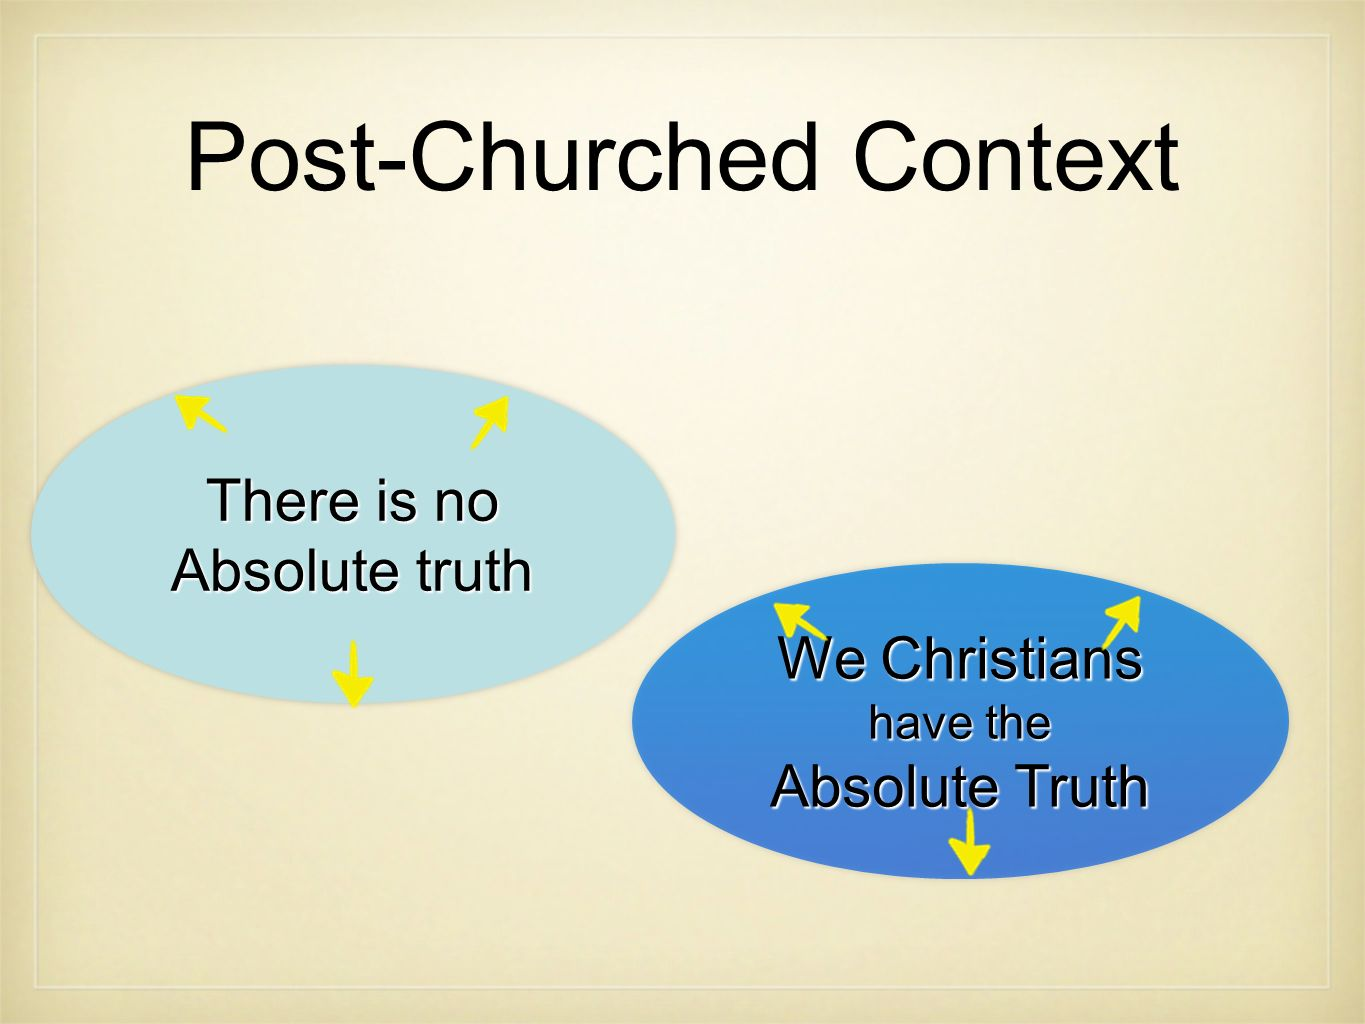 Absolute Truth in Christianity